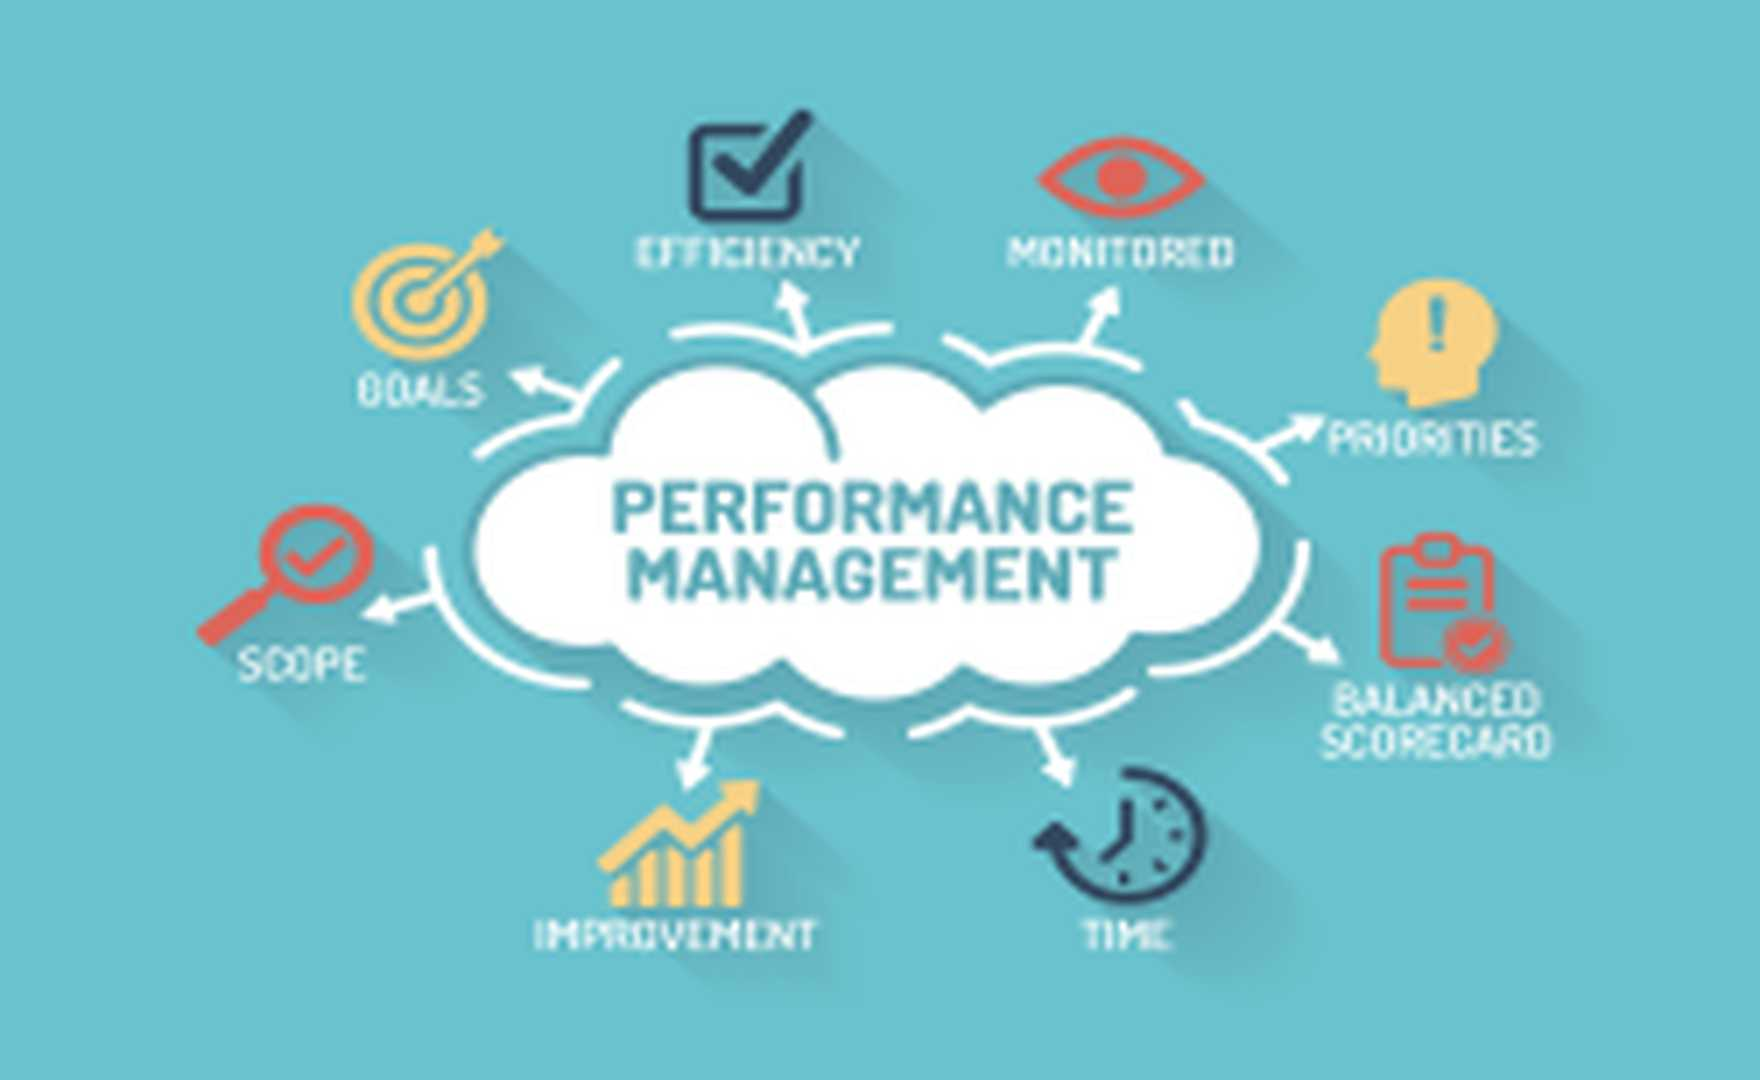 Do you need to rethink your performance management